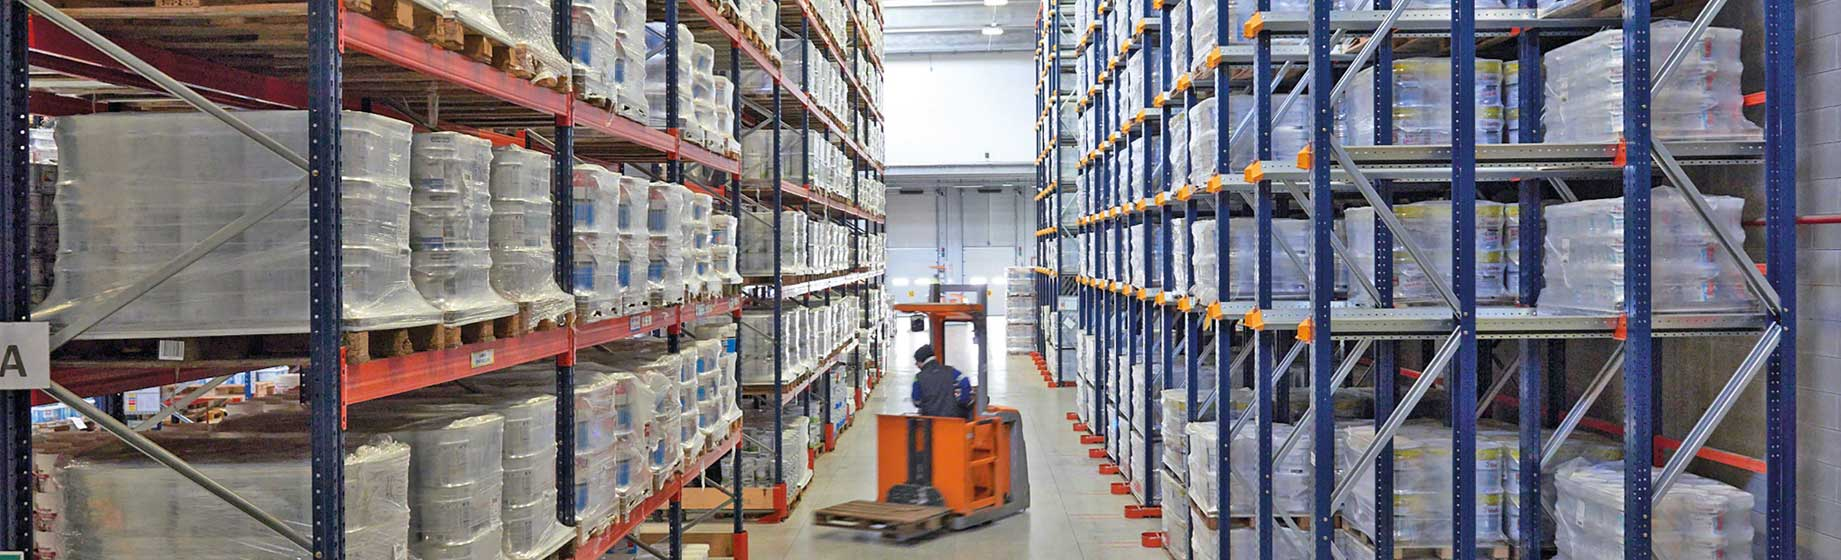 Warehouse Metal Racking and Shelving Systems - interlakemecalux.com